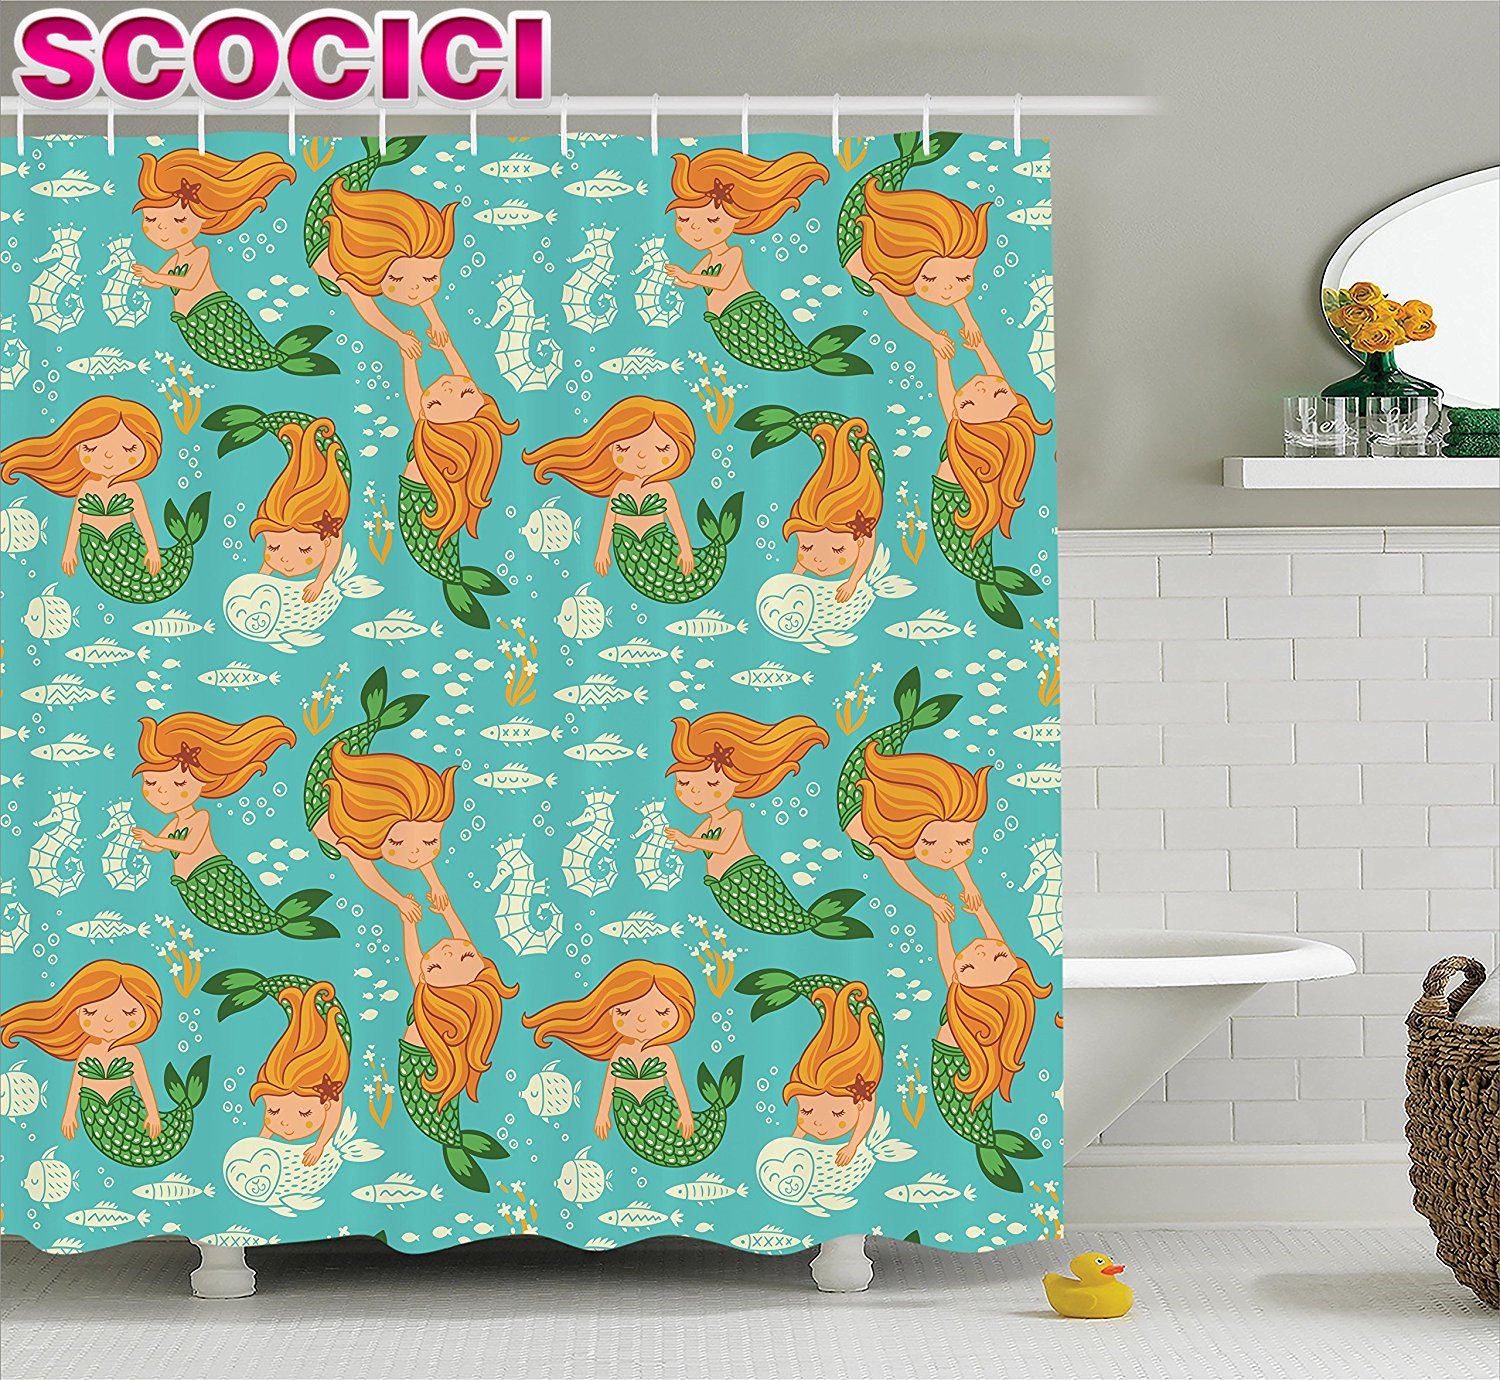 Mermaid Decor Shower Curtain Set Underwater Cartoon World Little Mermaid Girls Friends Seahorse Fish Shells Bathroom Accessories